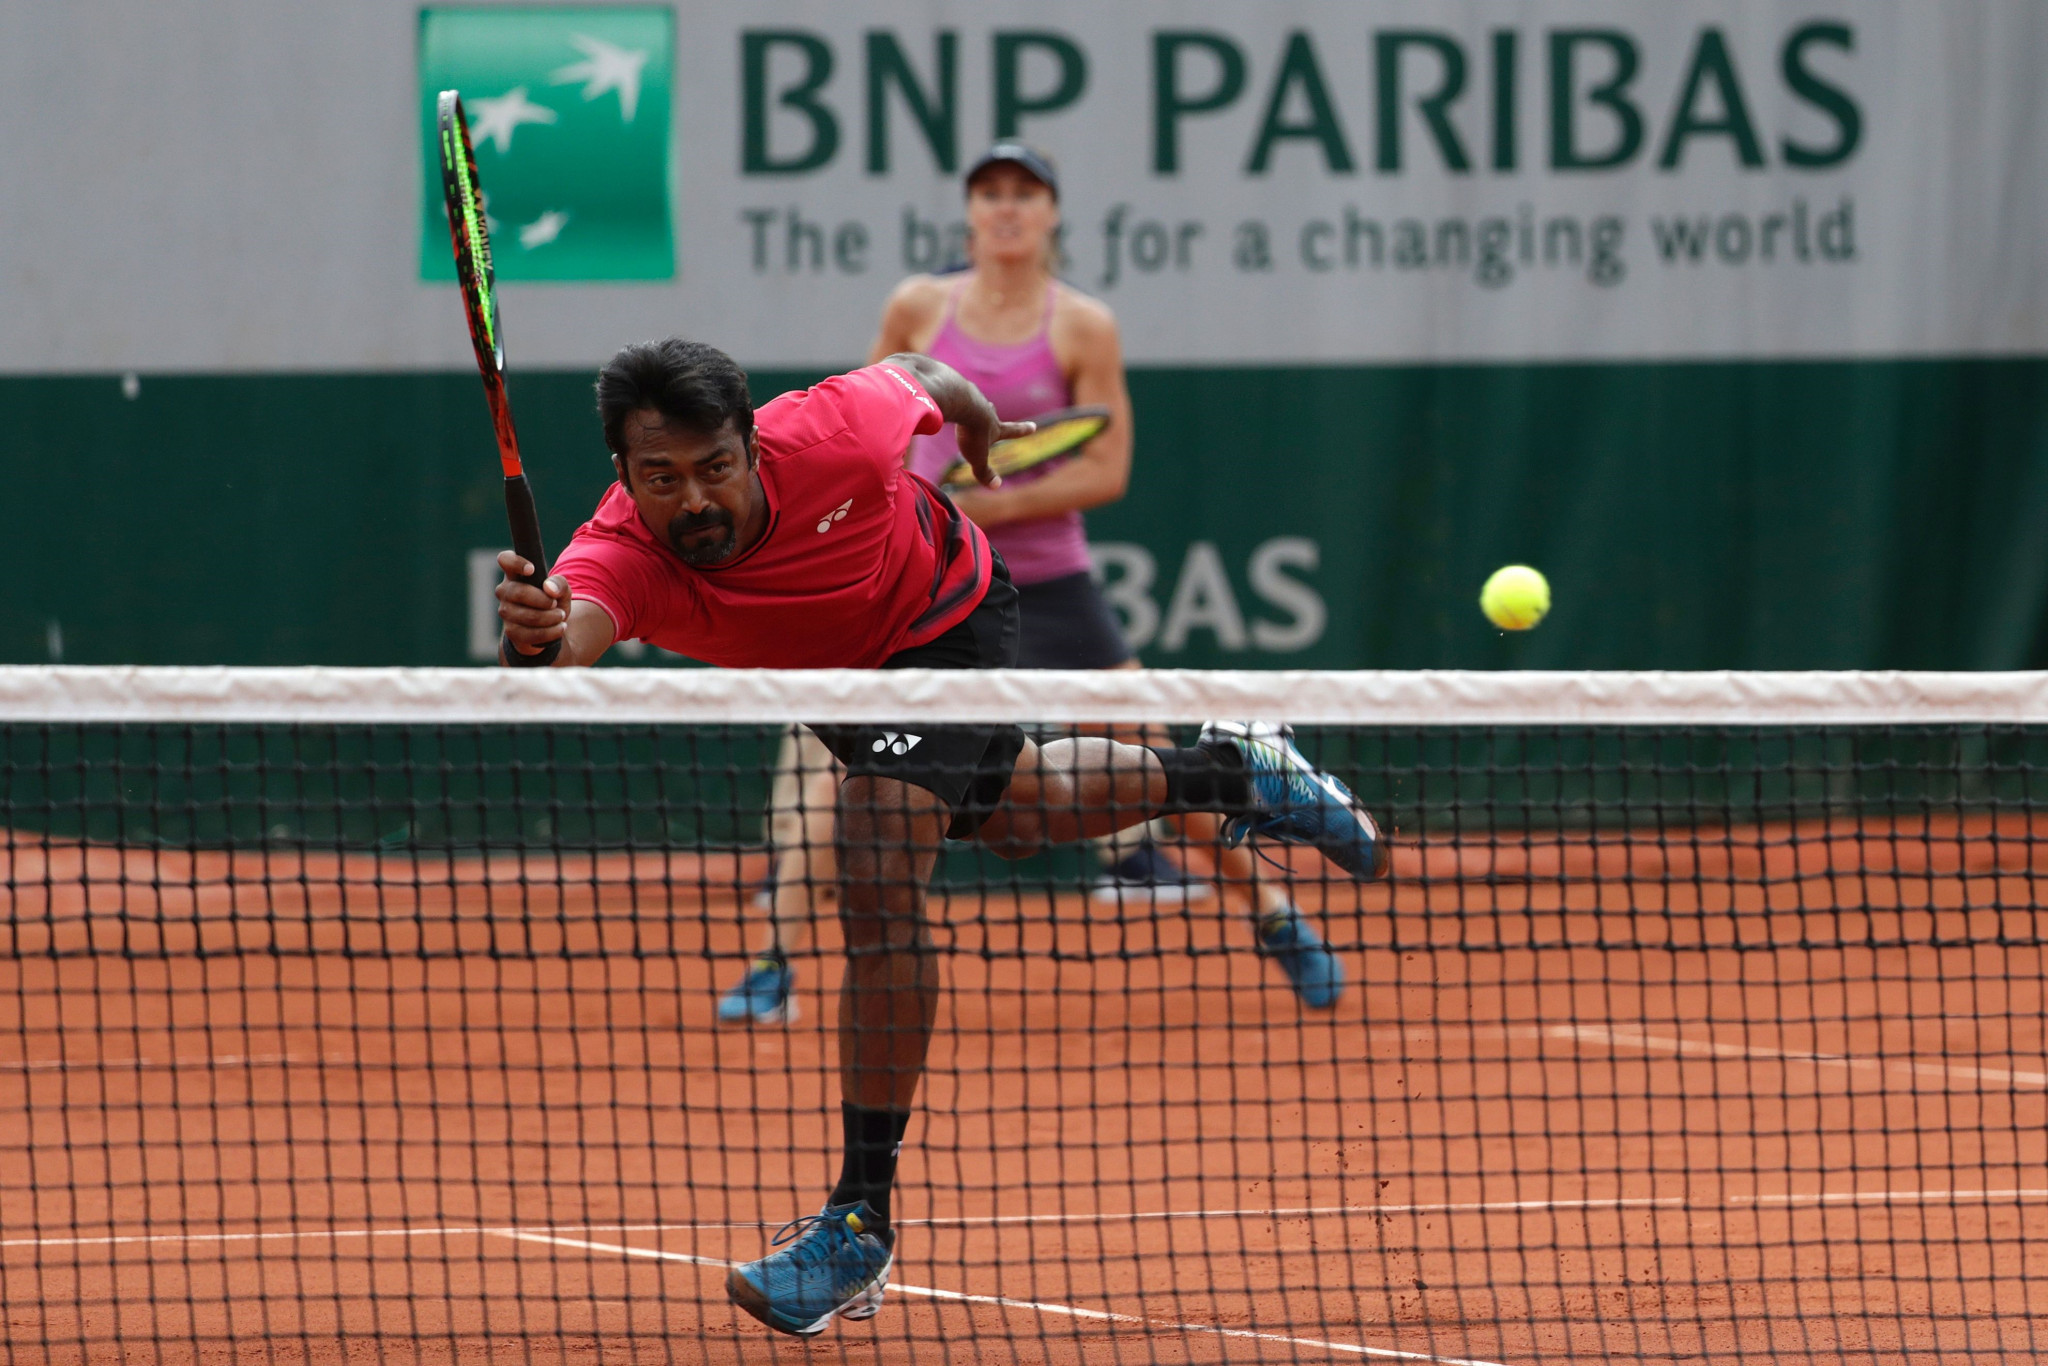 Indian tennis star Leander among athletes and coaches to pull out of 2018 Asian Games